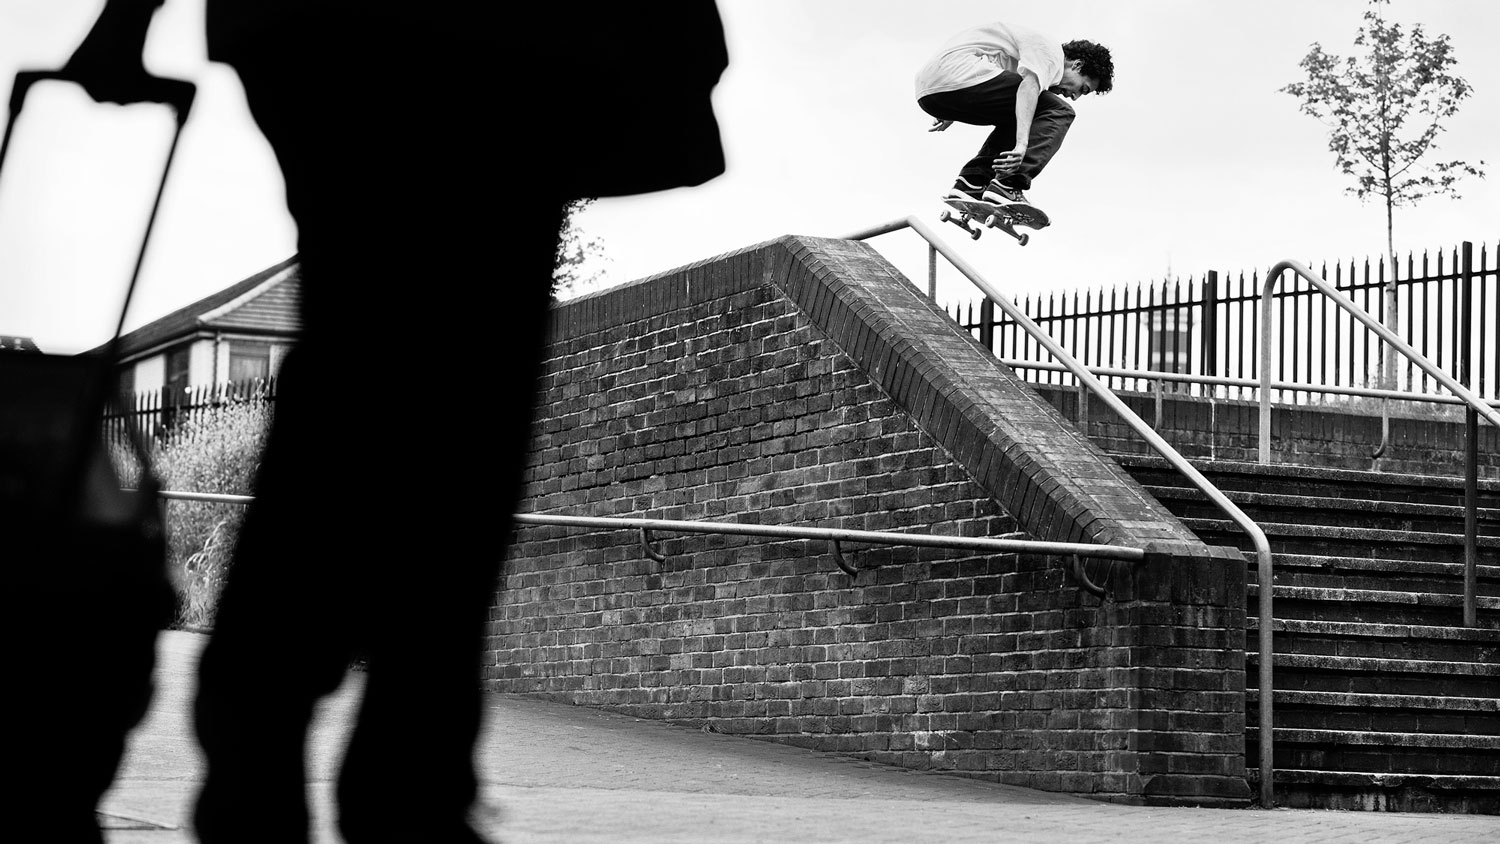 Feat-TYRONE_OHANRAHAN_ALLEYOOP_BACKSIDE_180_GREY_HENRY_KINGSFORD_FINAL